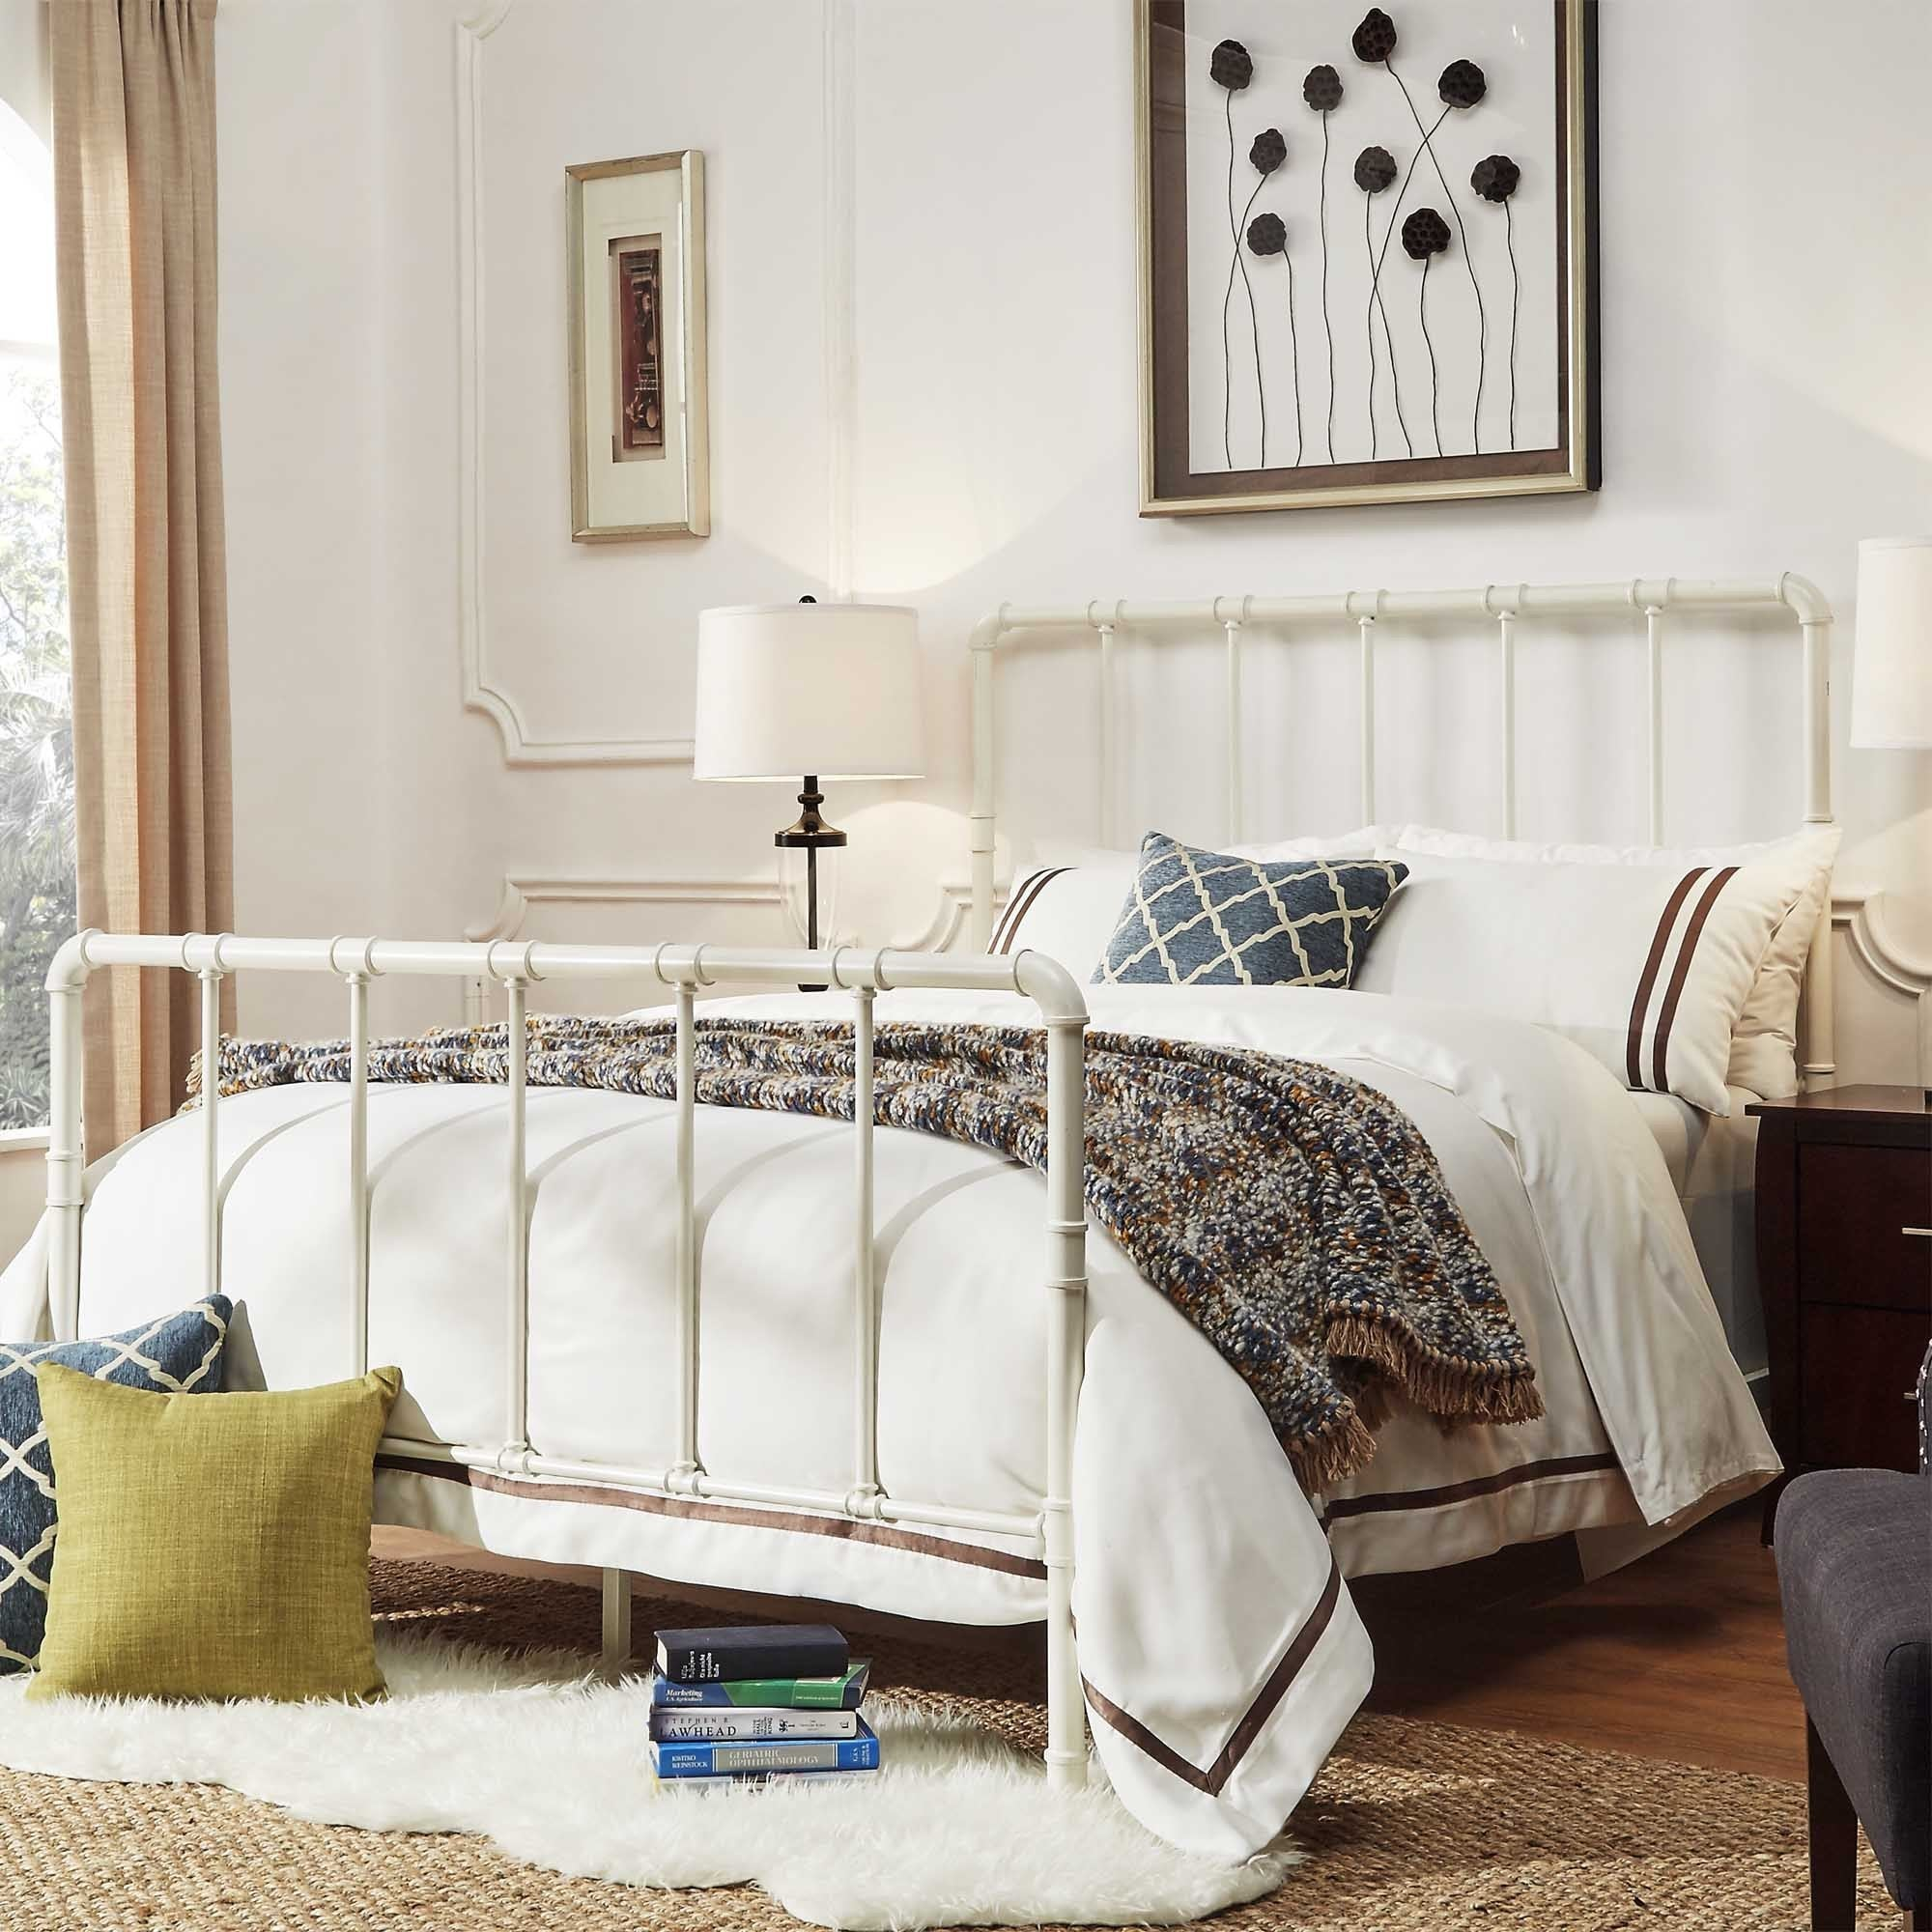 Buy White Beds Online at Overstock.com | Our Best Bedroom Furniture ...